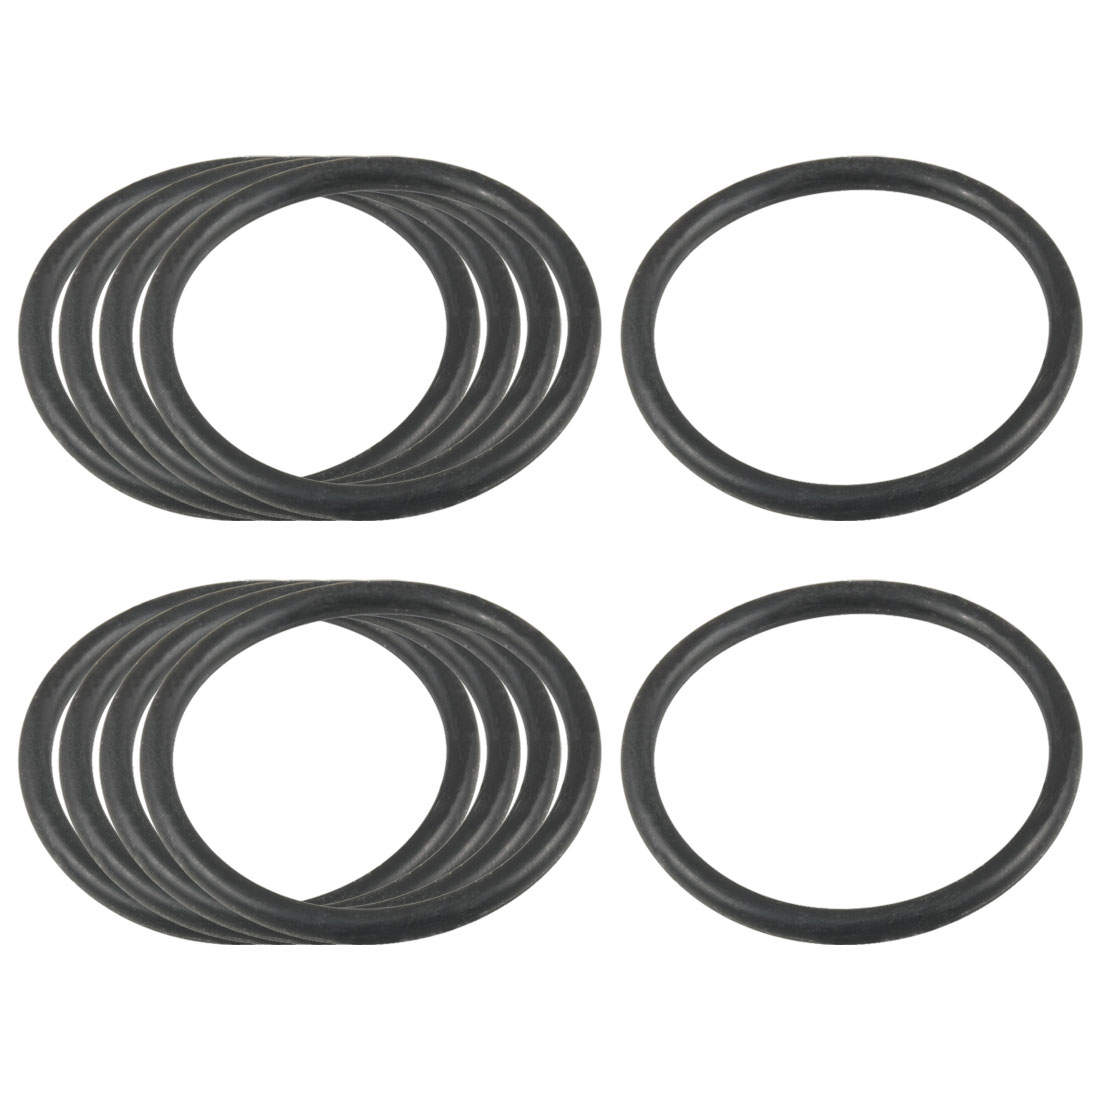 10Pcs Industrial Rubber O Ring Oil Filter Sealing Gaskets 41mm x 3.1mm